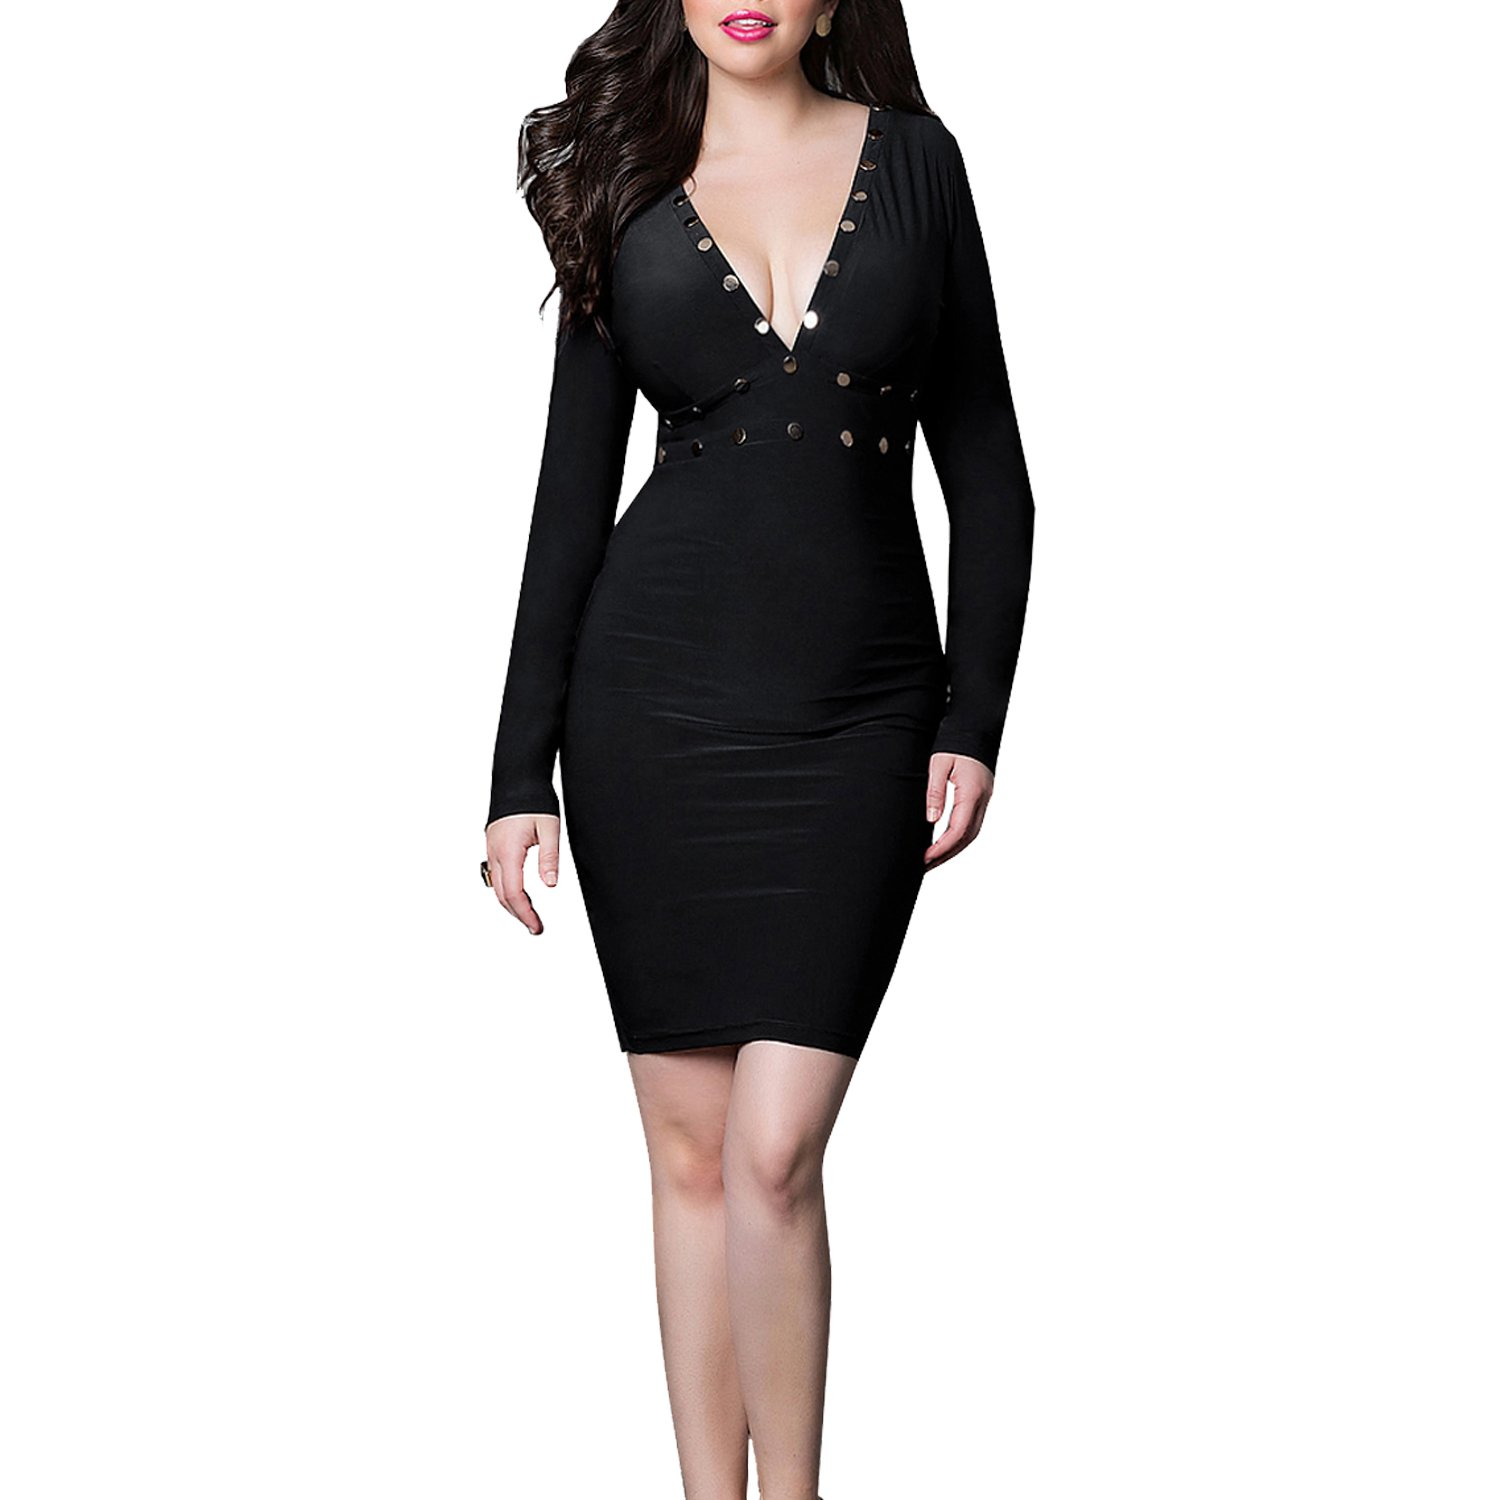 Zeagoo Womens Casual Fishtail Bodycon Bandage Party Cocktail Dress